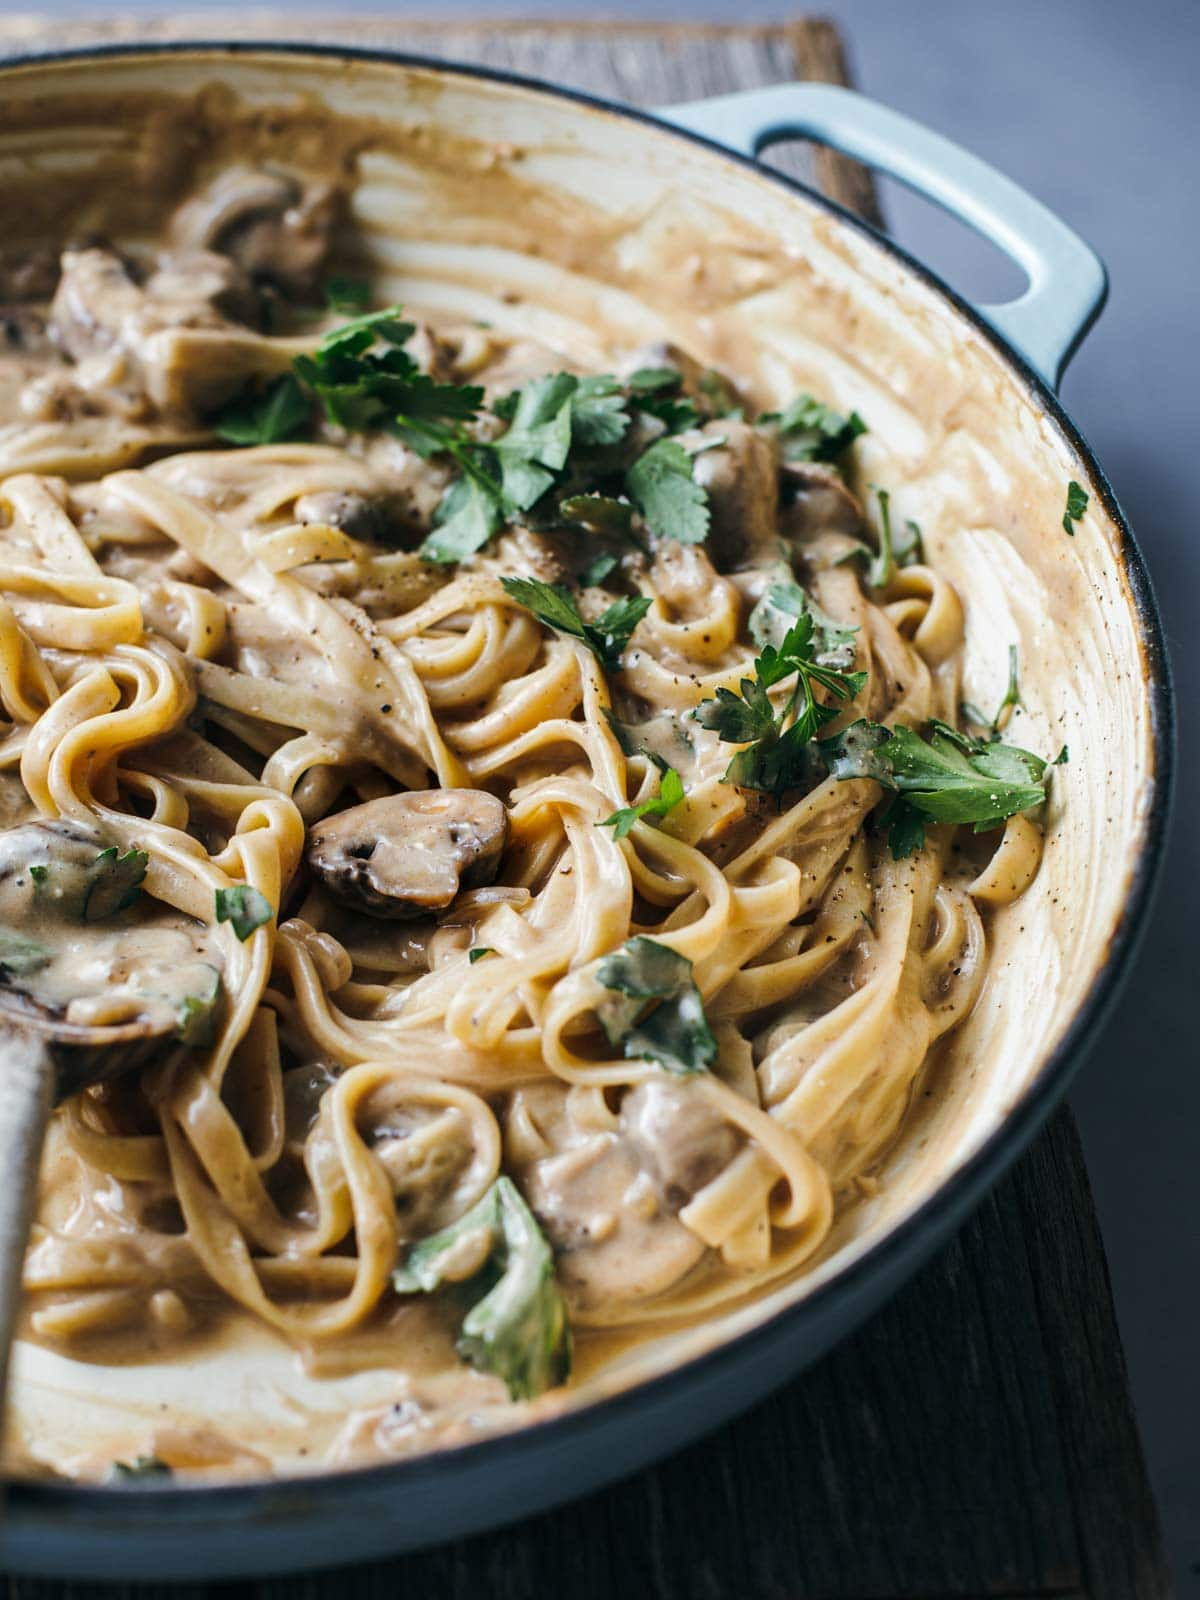 Pasta and mushroom sauce in a pot.